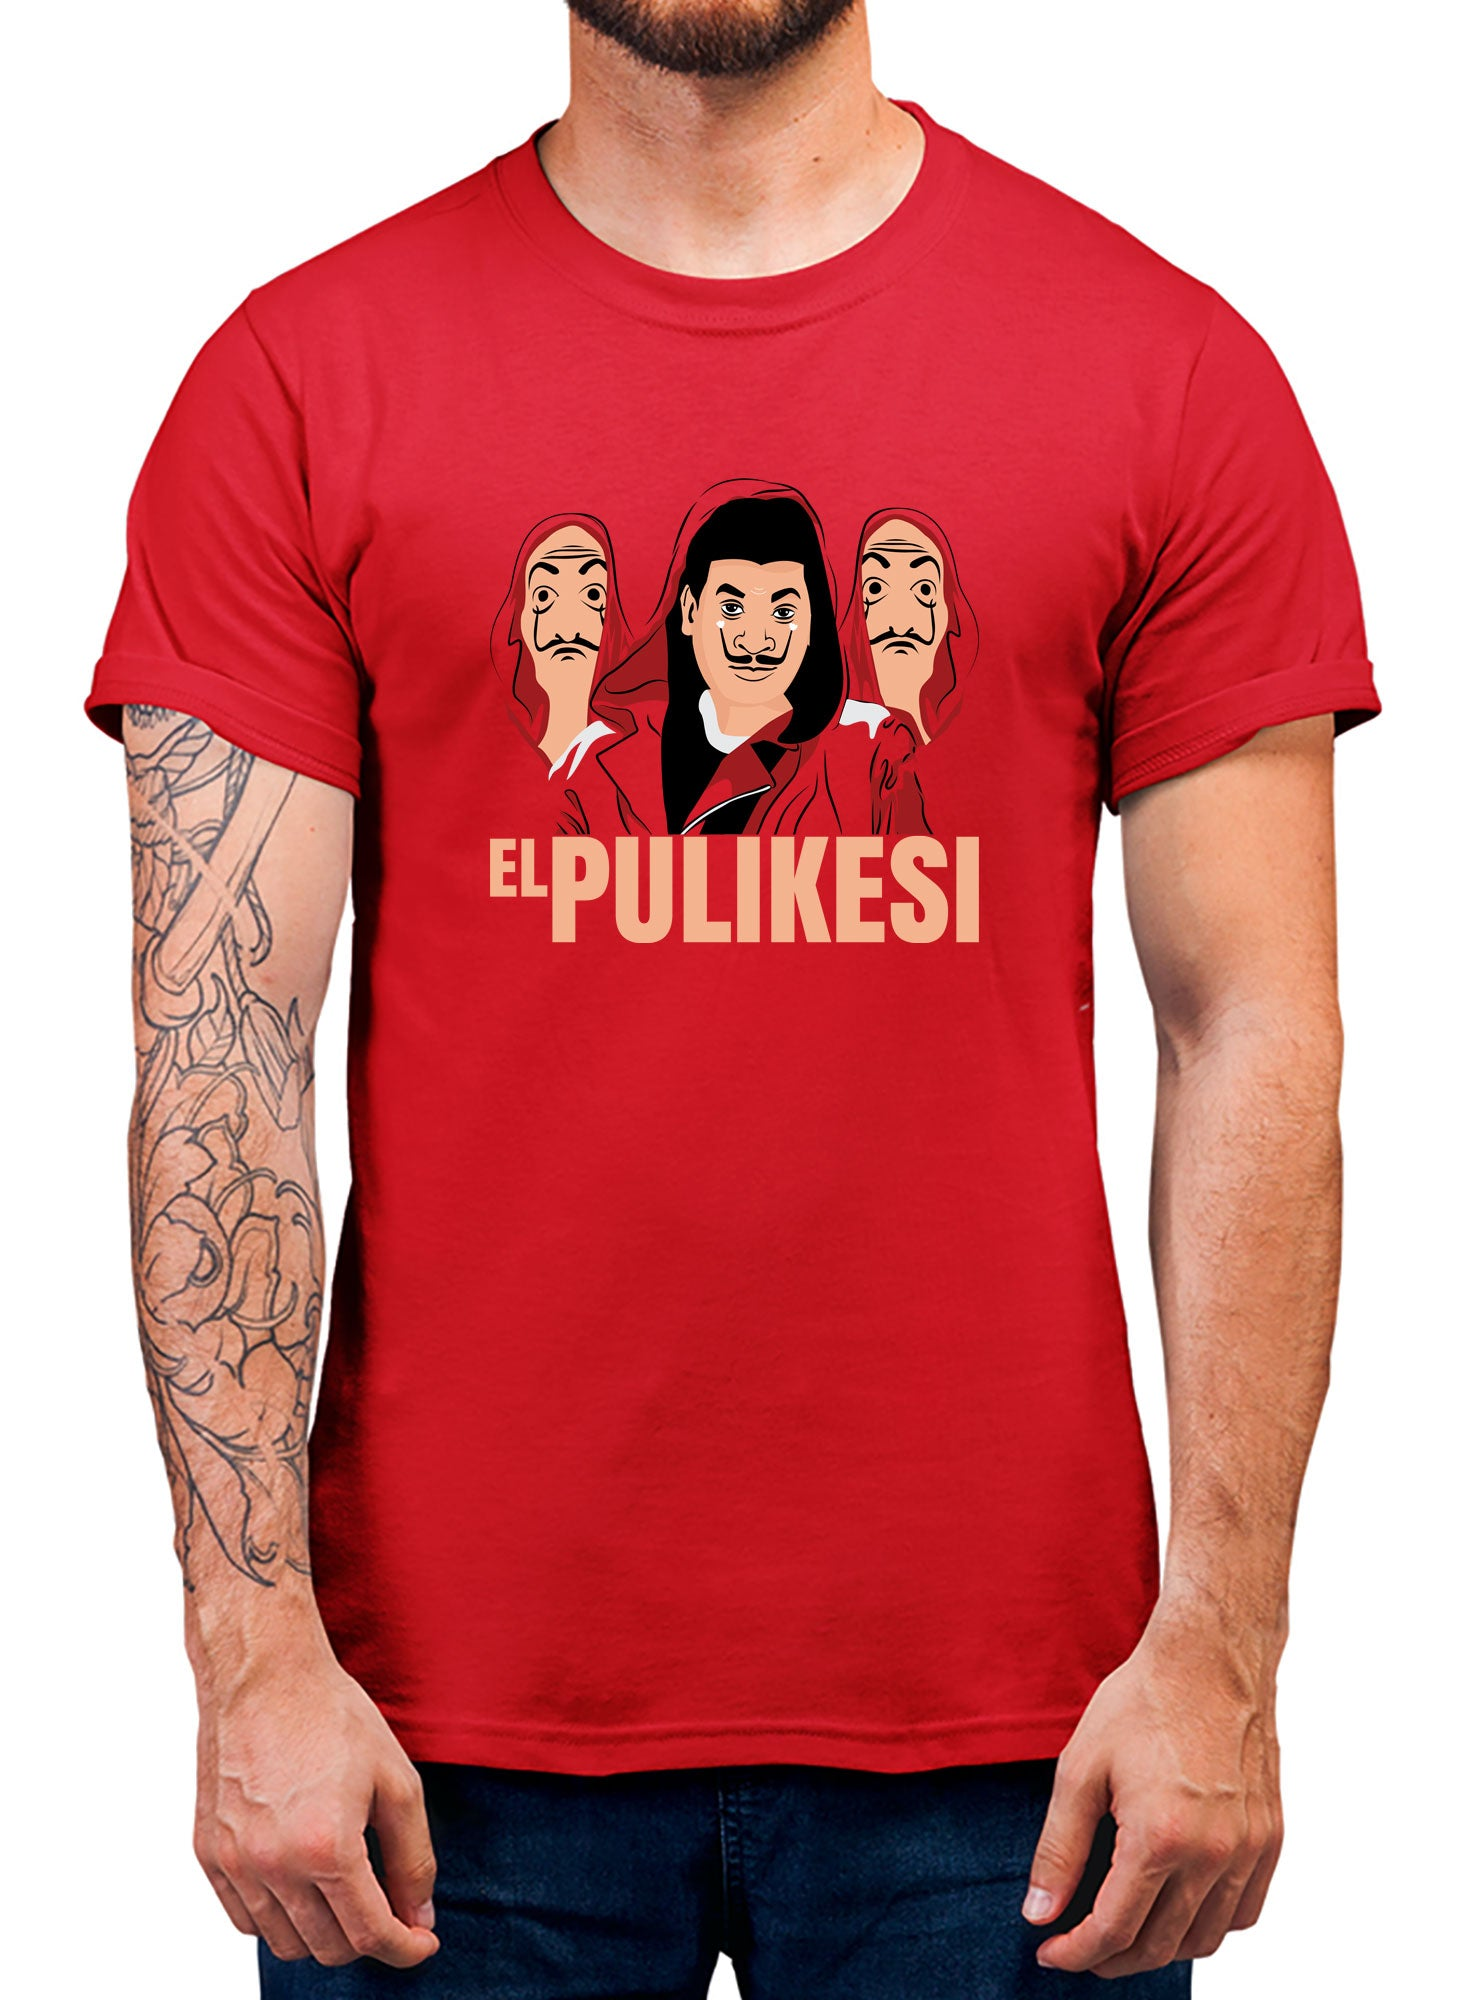 Pullikesi Version T-shirt